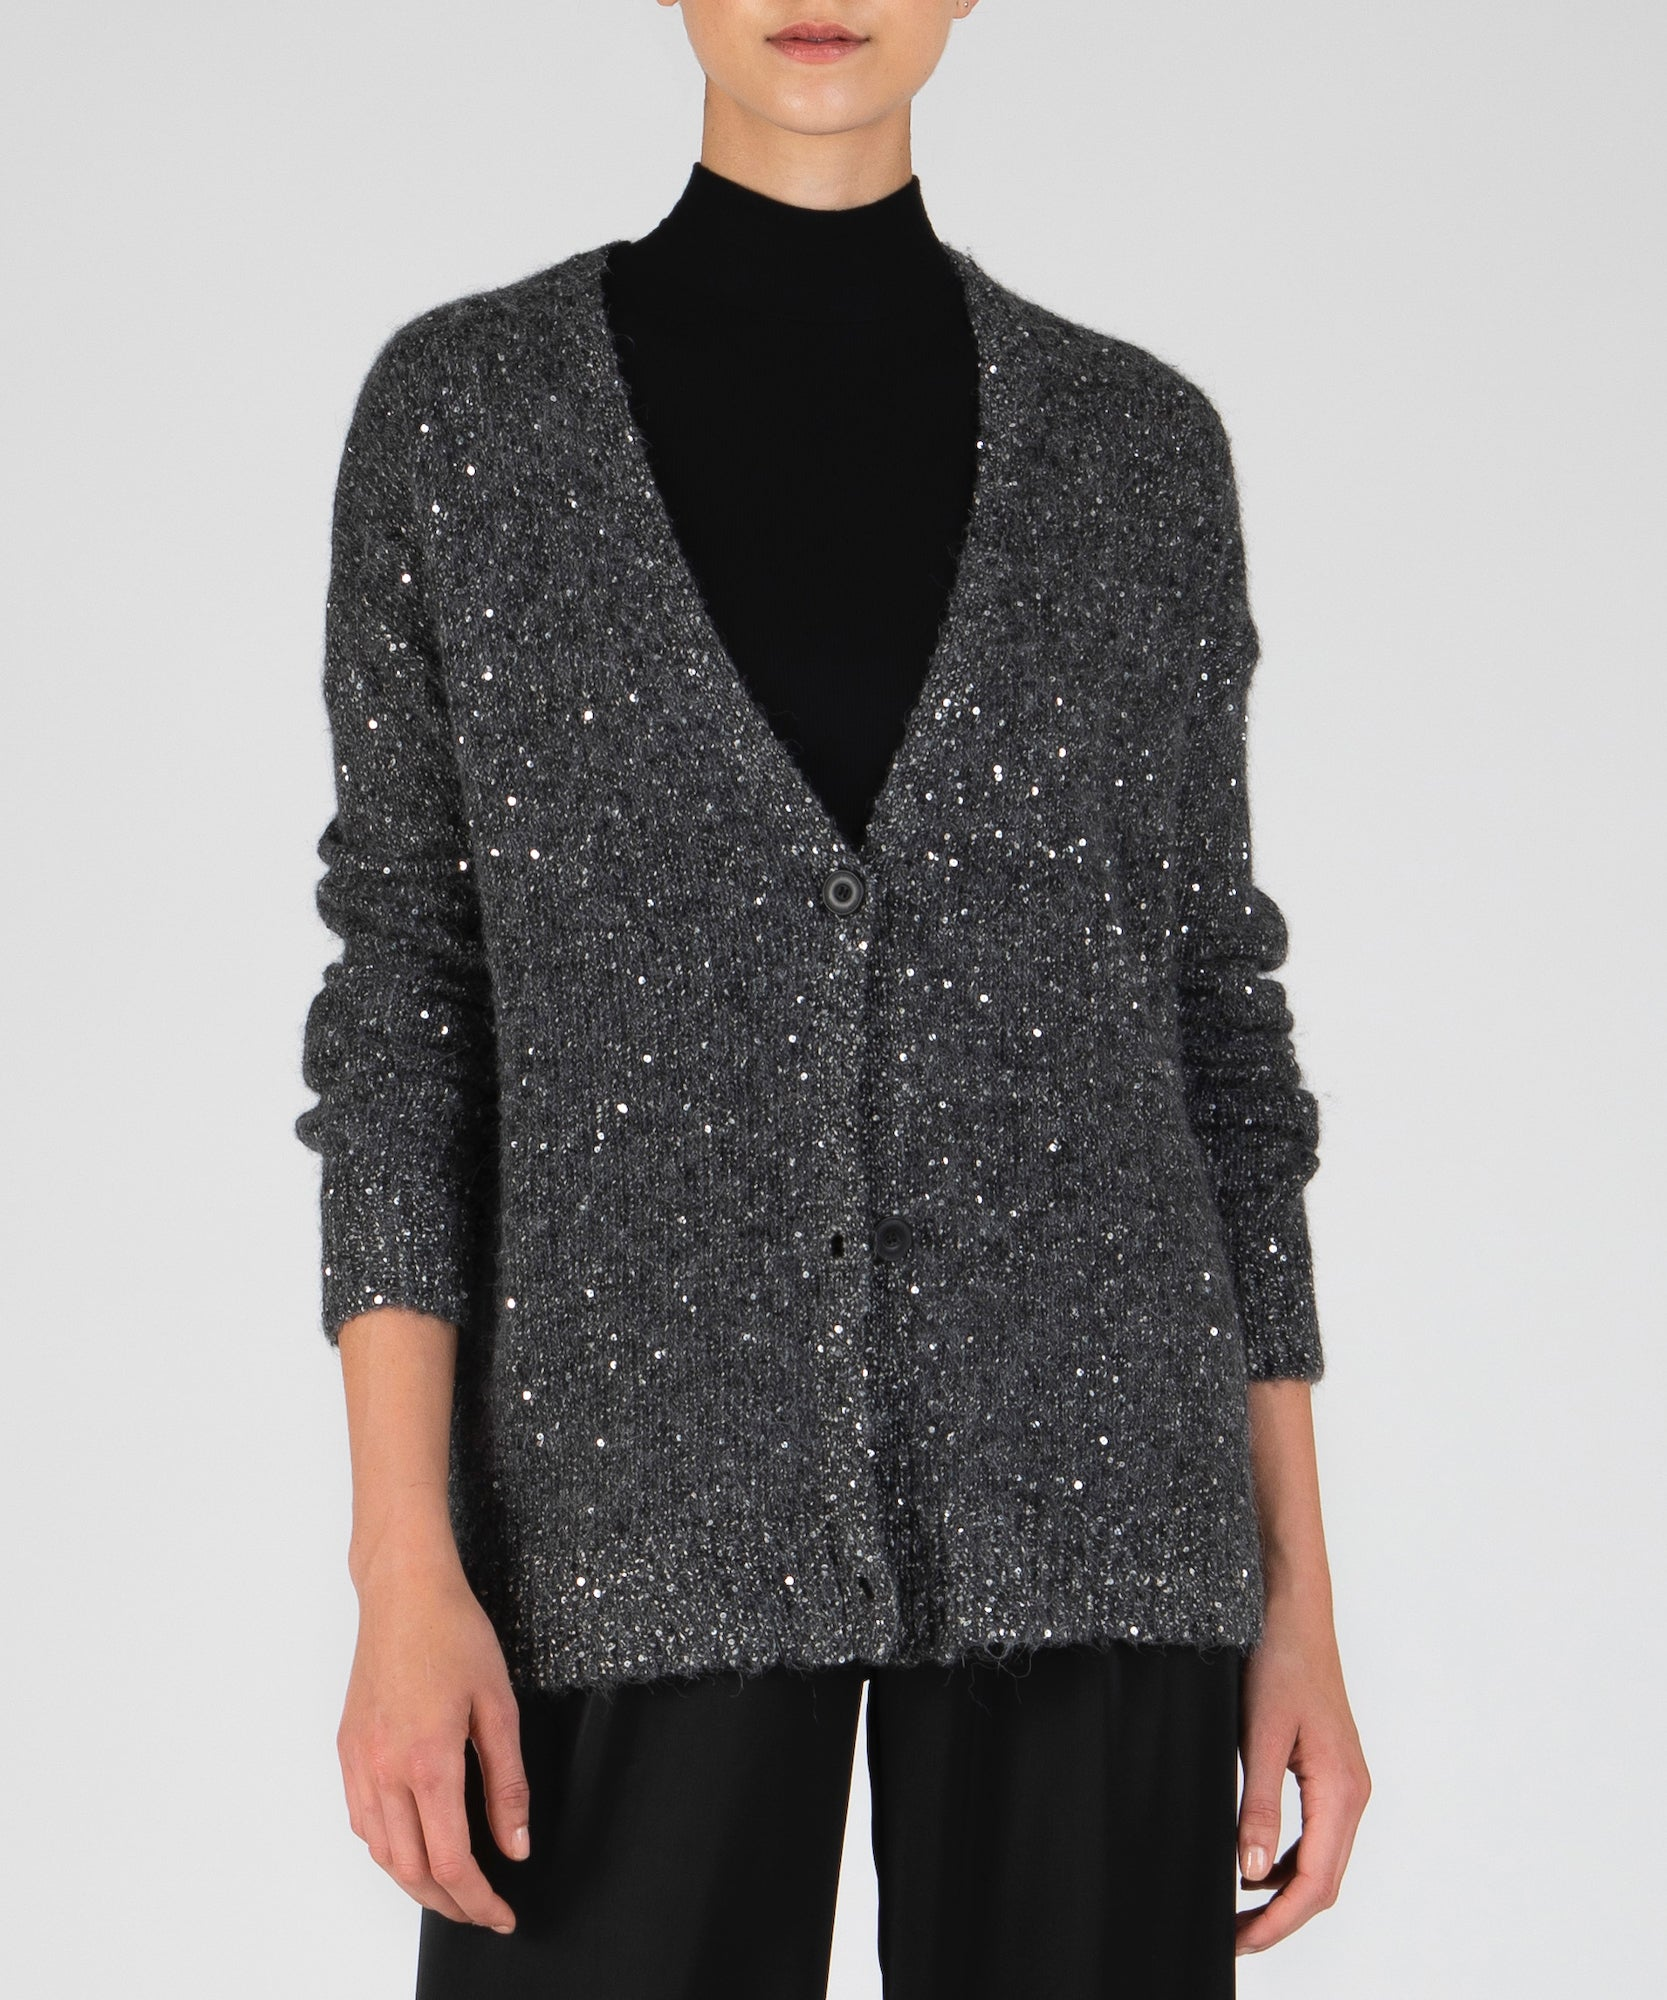 Charcoal and Silver Sequin V-Neck Cardigan - Women's Luxe Sweater by ATM Anthony Thomas Melillo